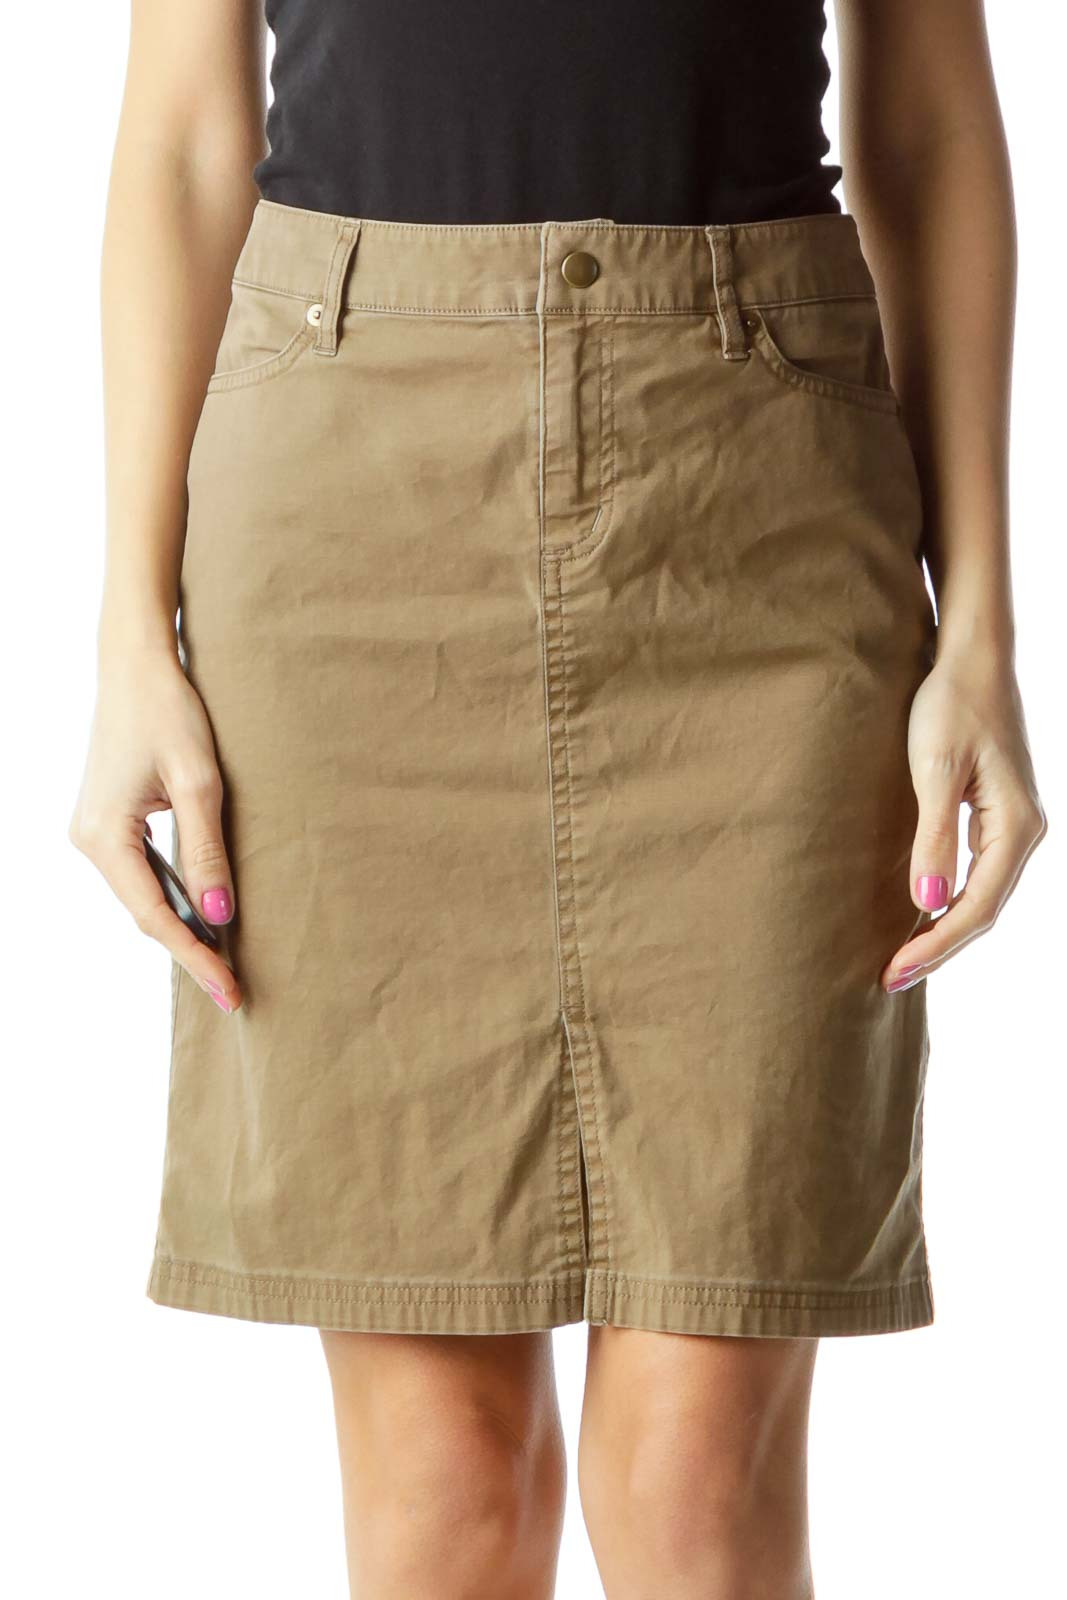 Brown Khaki Pocketed Skirt